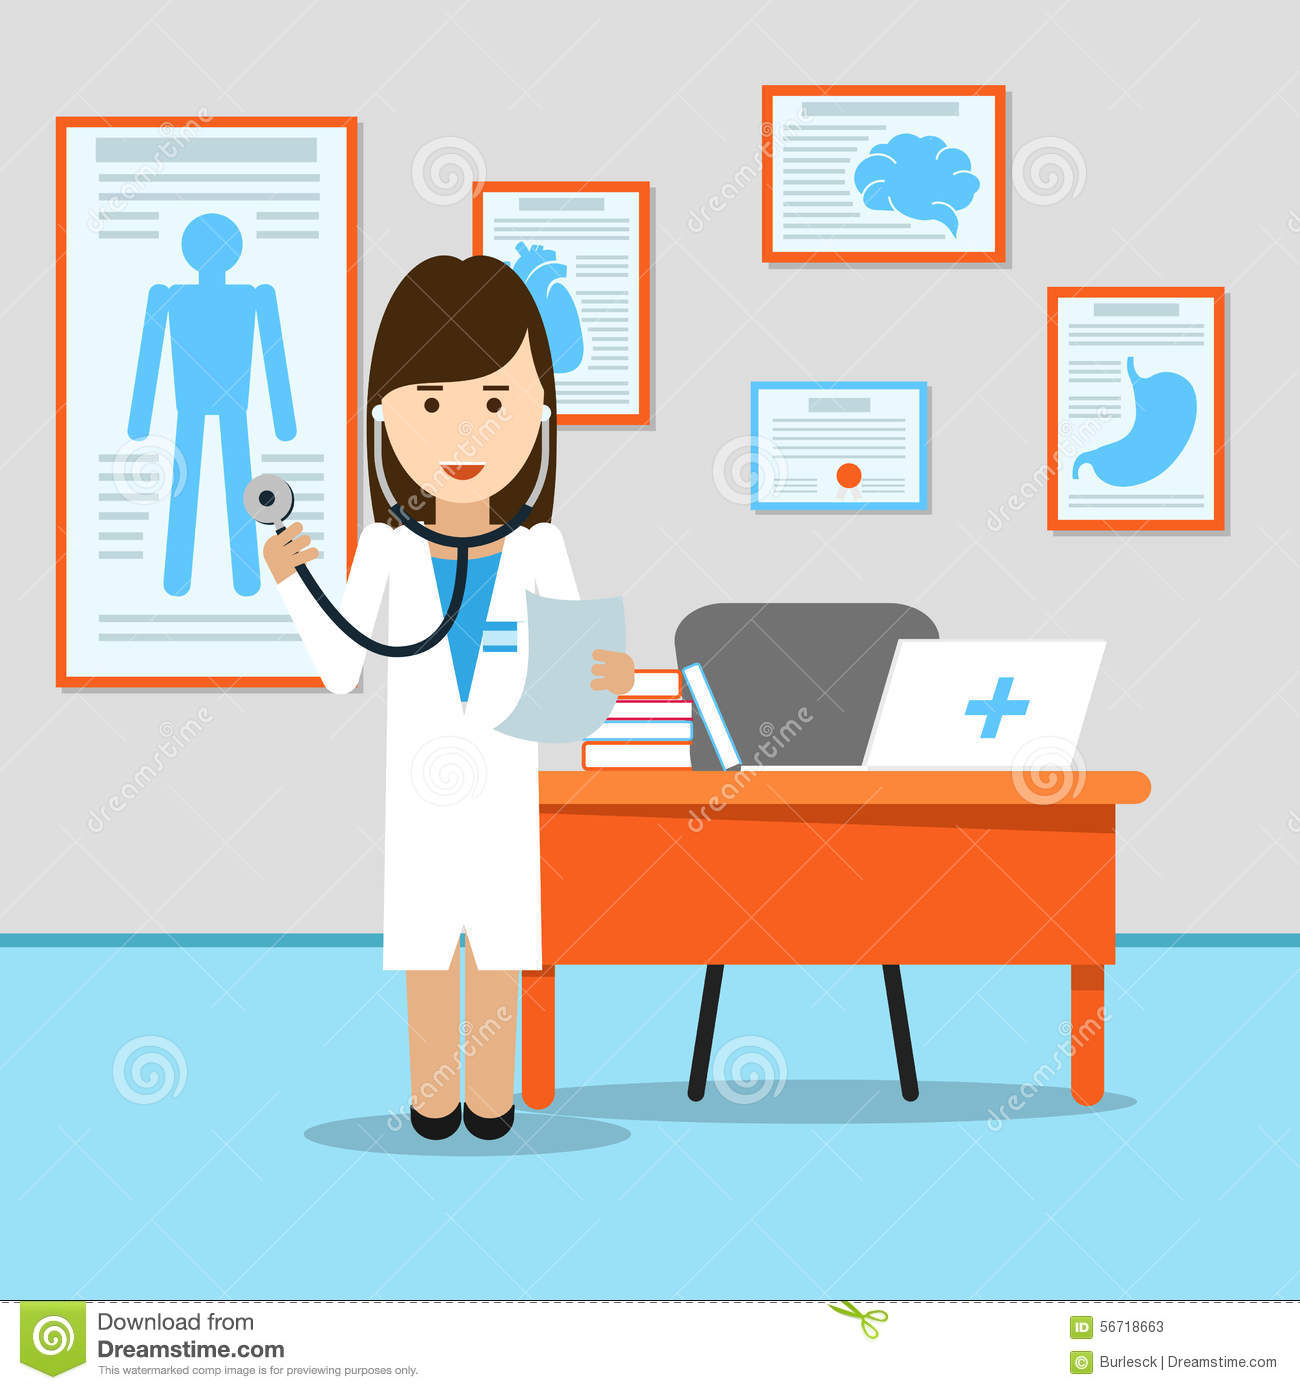 Clinic clipart 9 » Clipart Station.